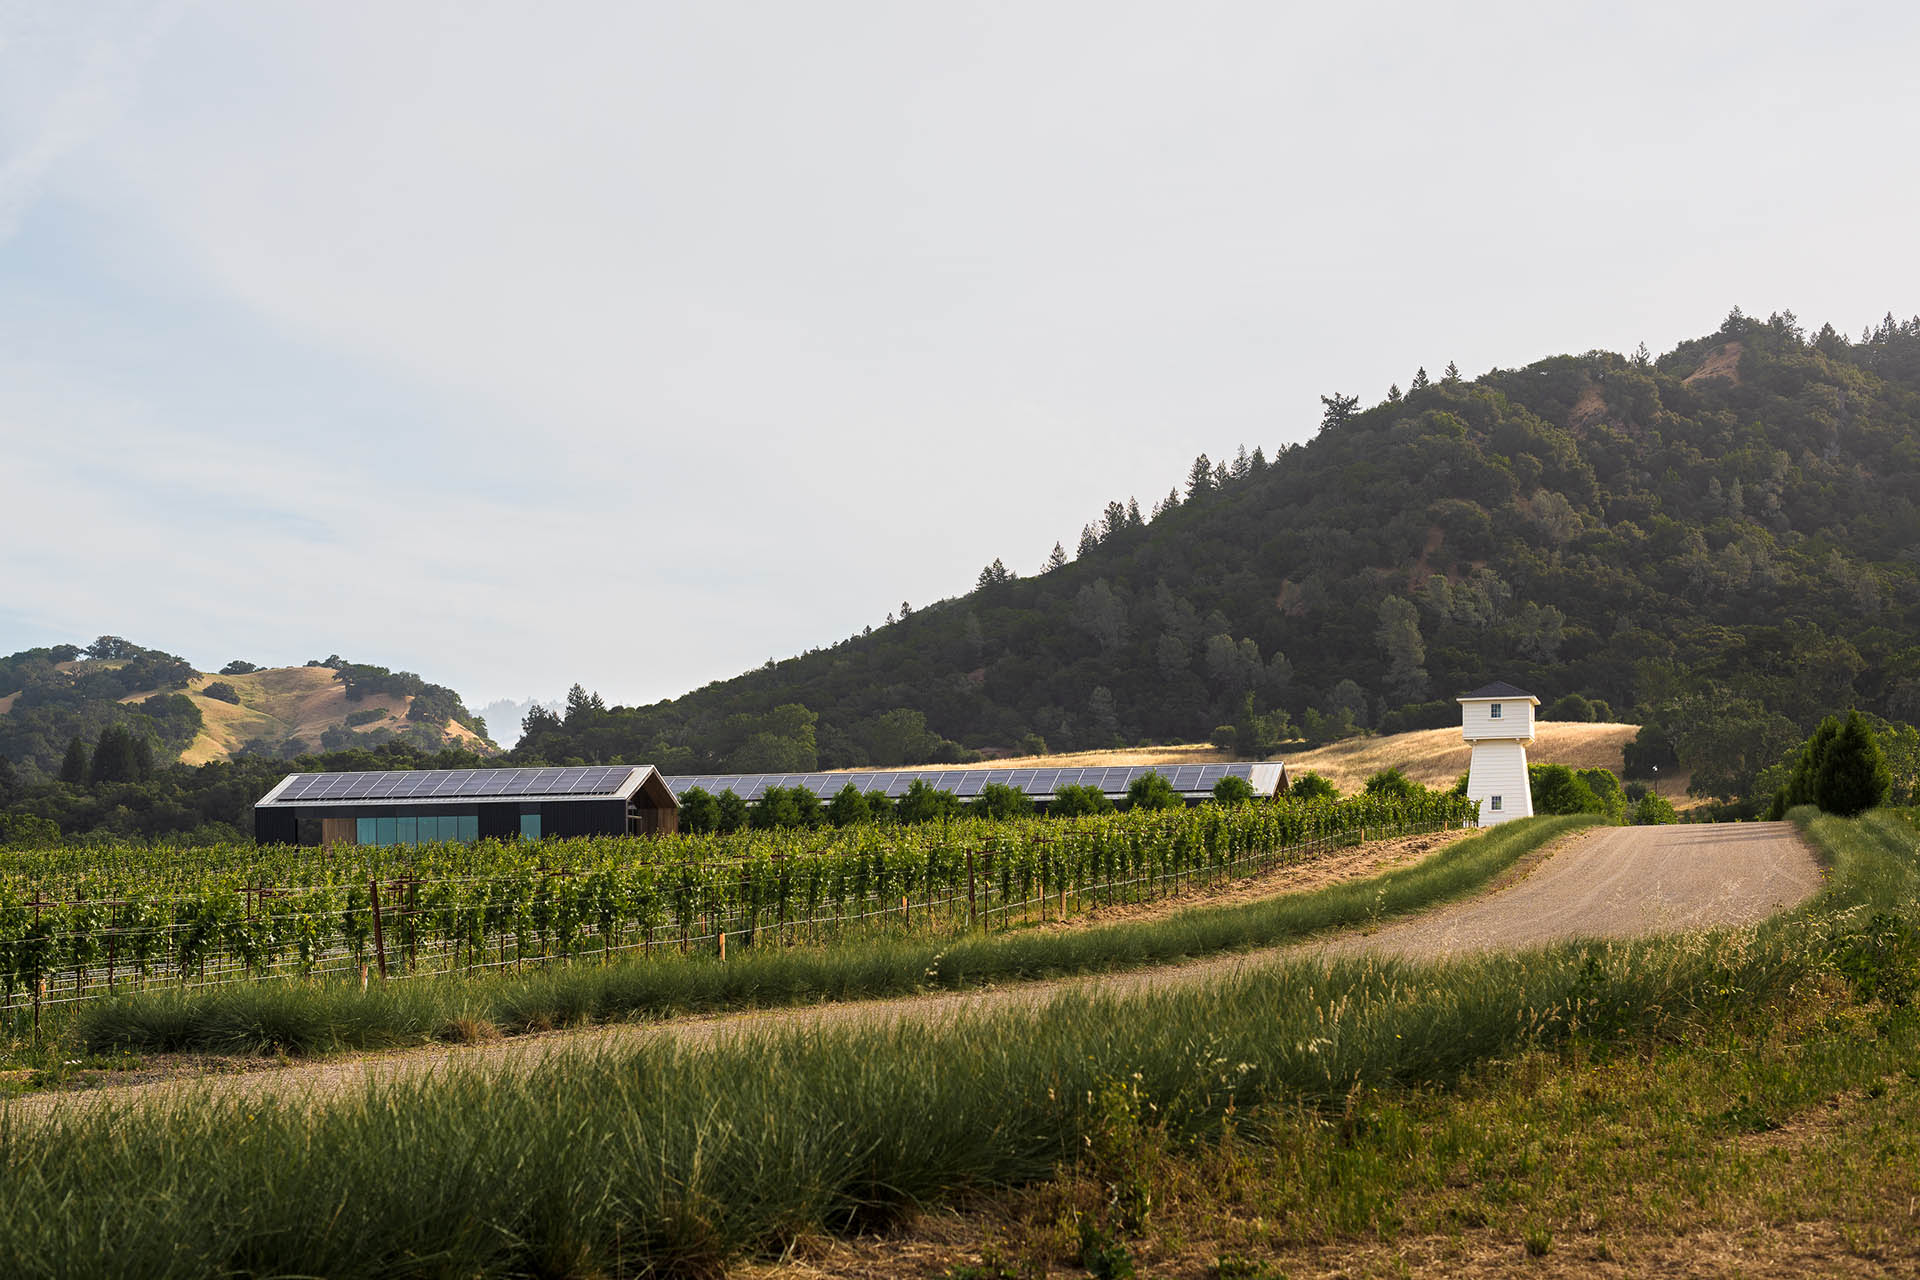 Silver Oak complex in background with vineyards and dirt road in foreground